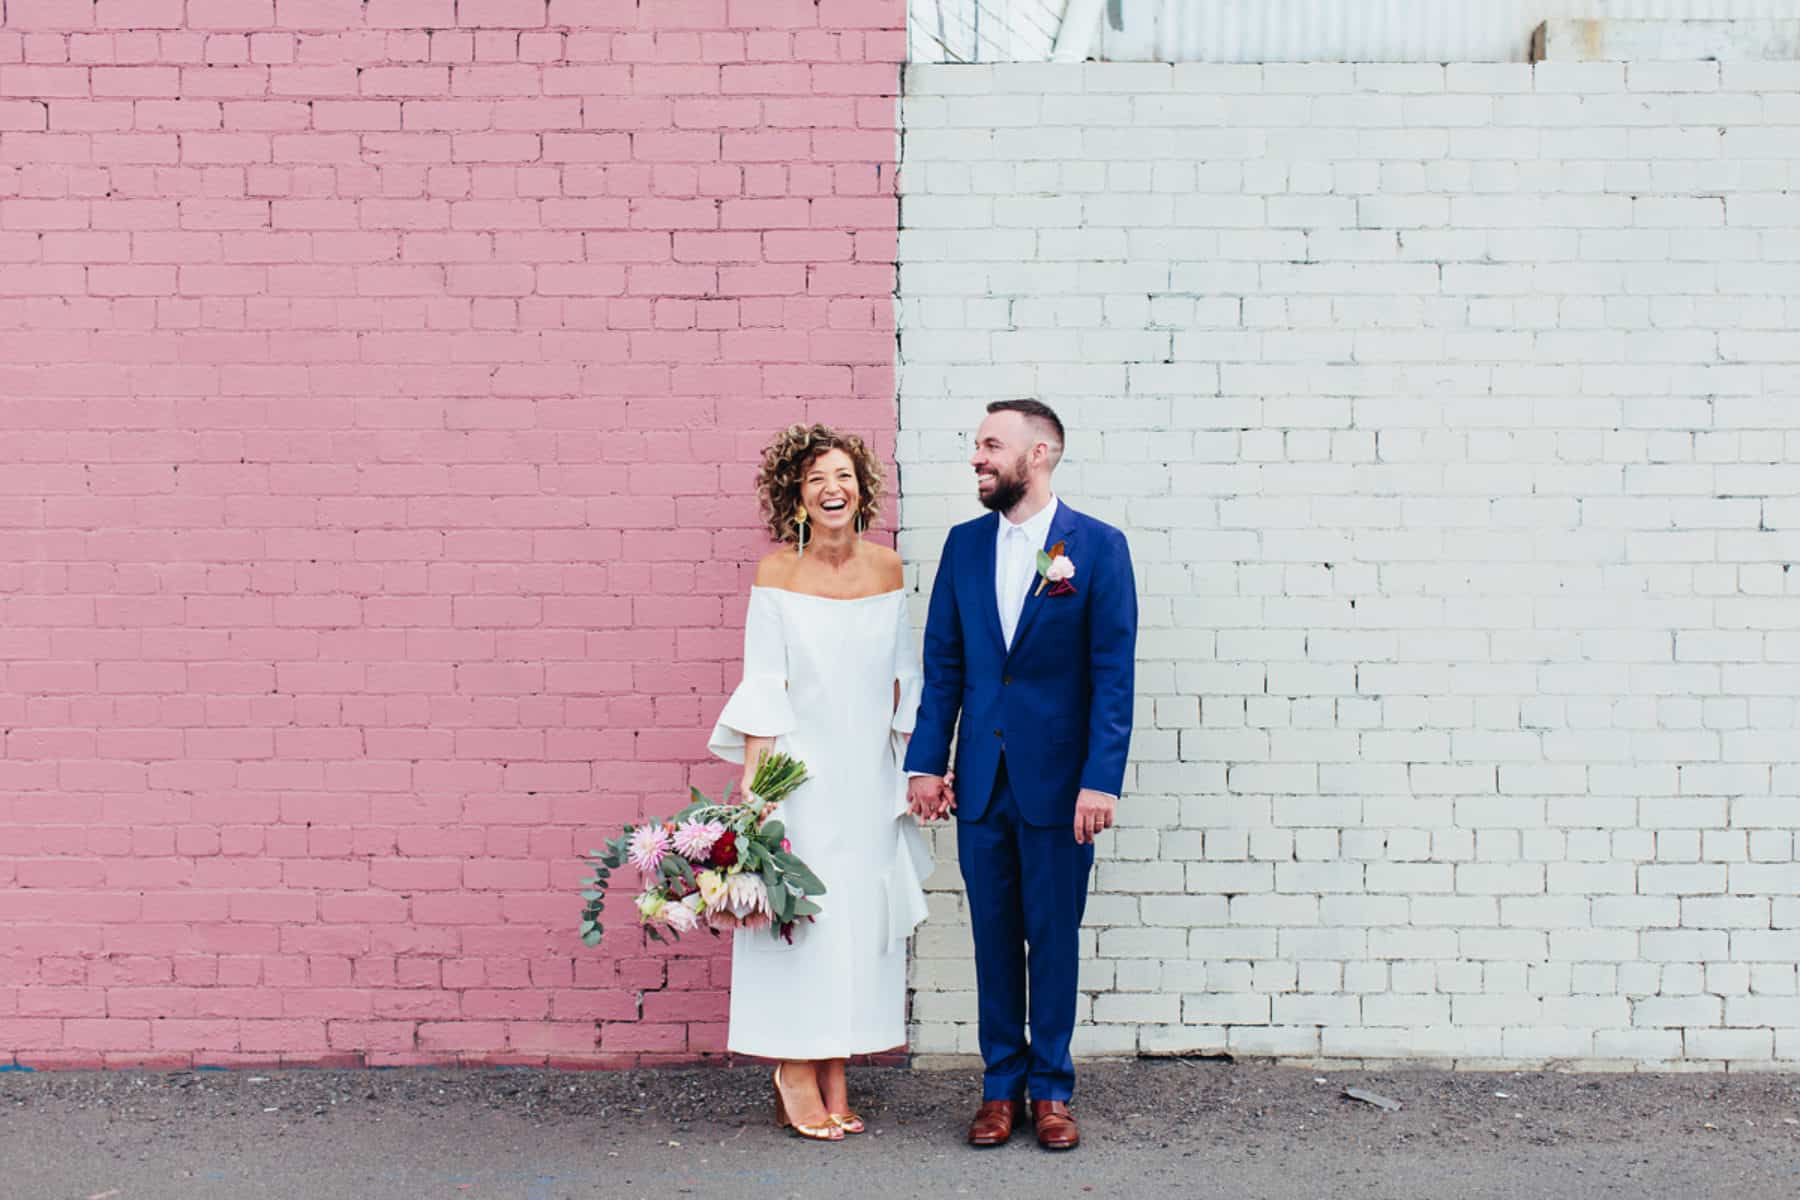 Top 10 weddings of 2017 | Georgia & Brent's Warehouse Wedding at Gather & Tailor